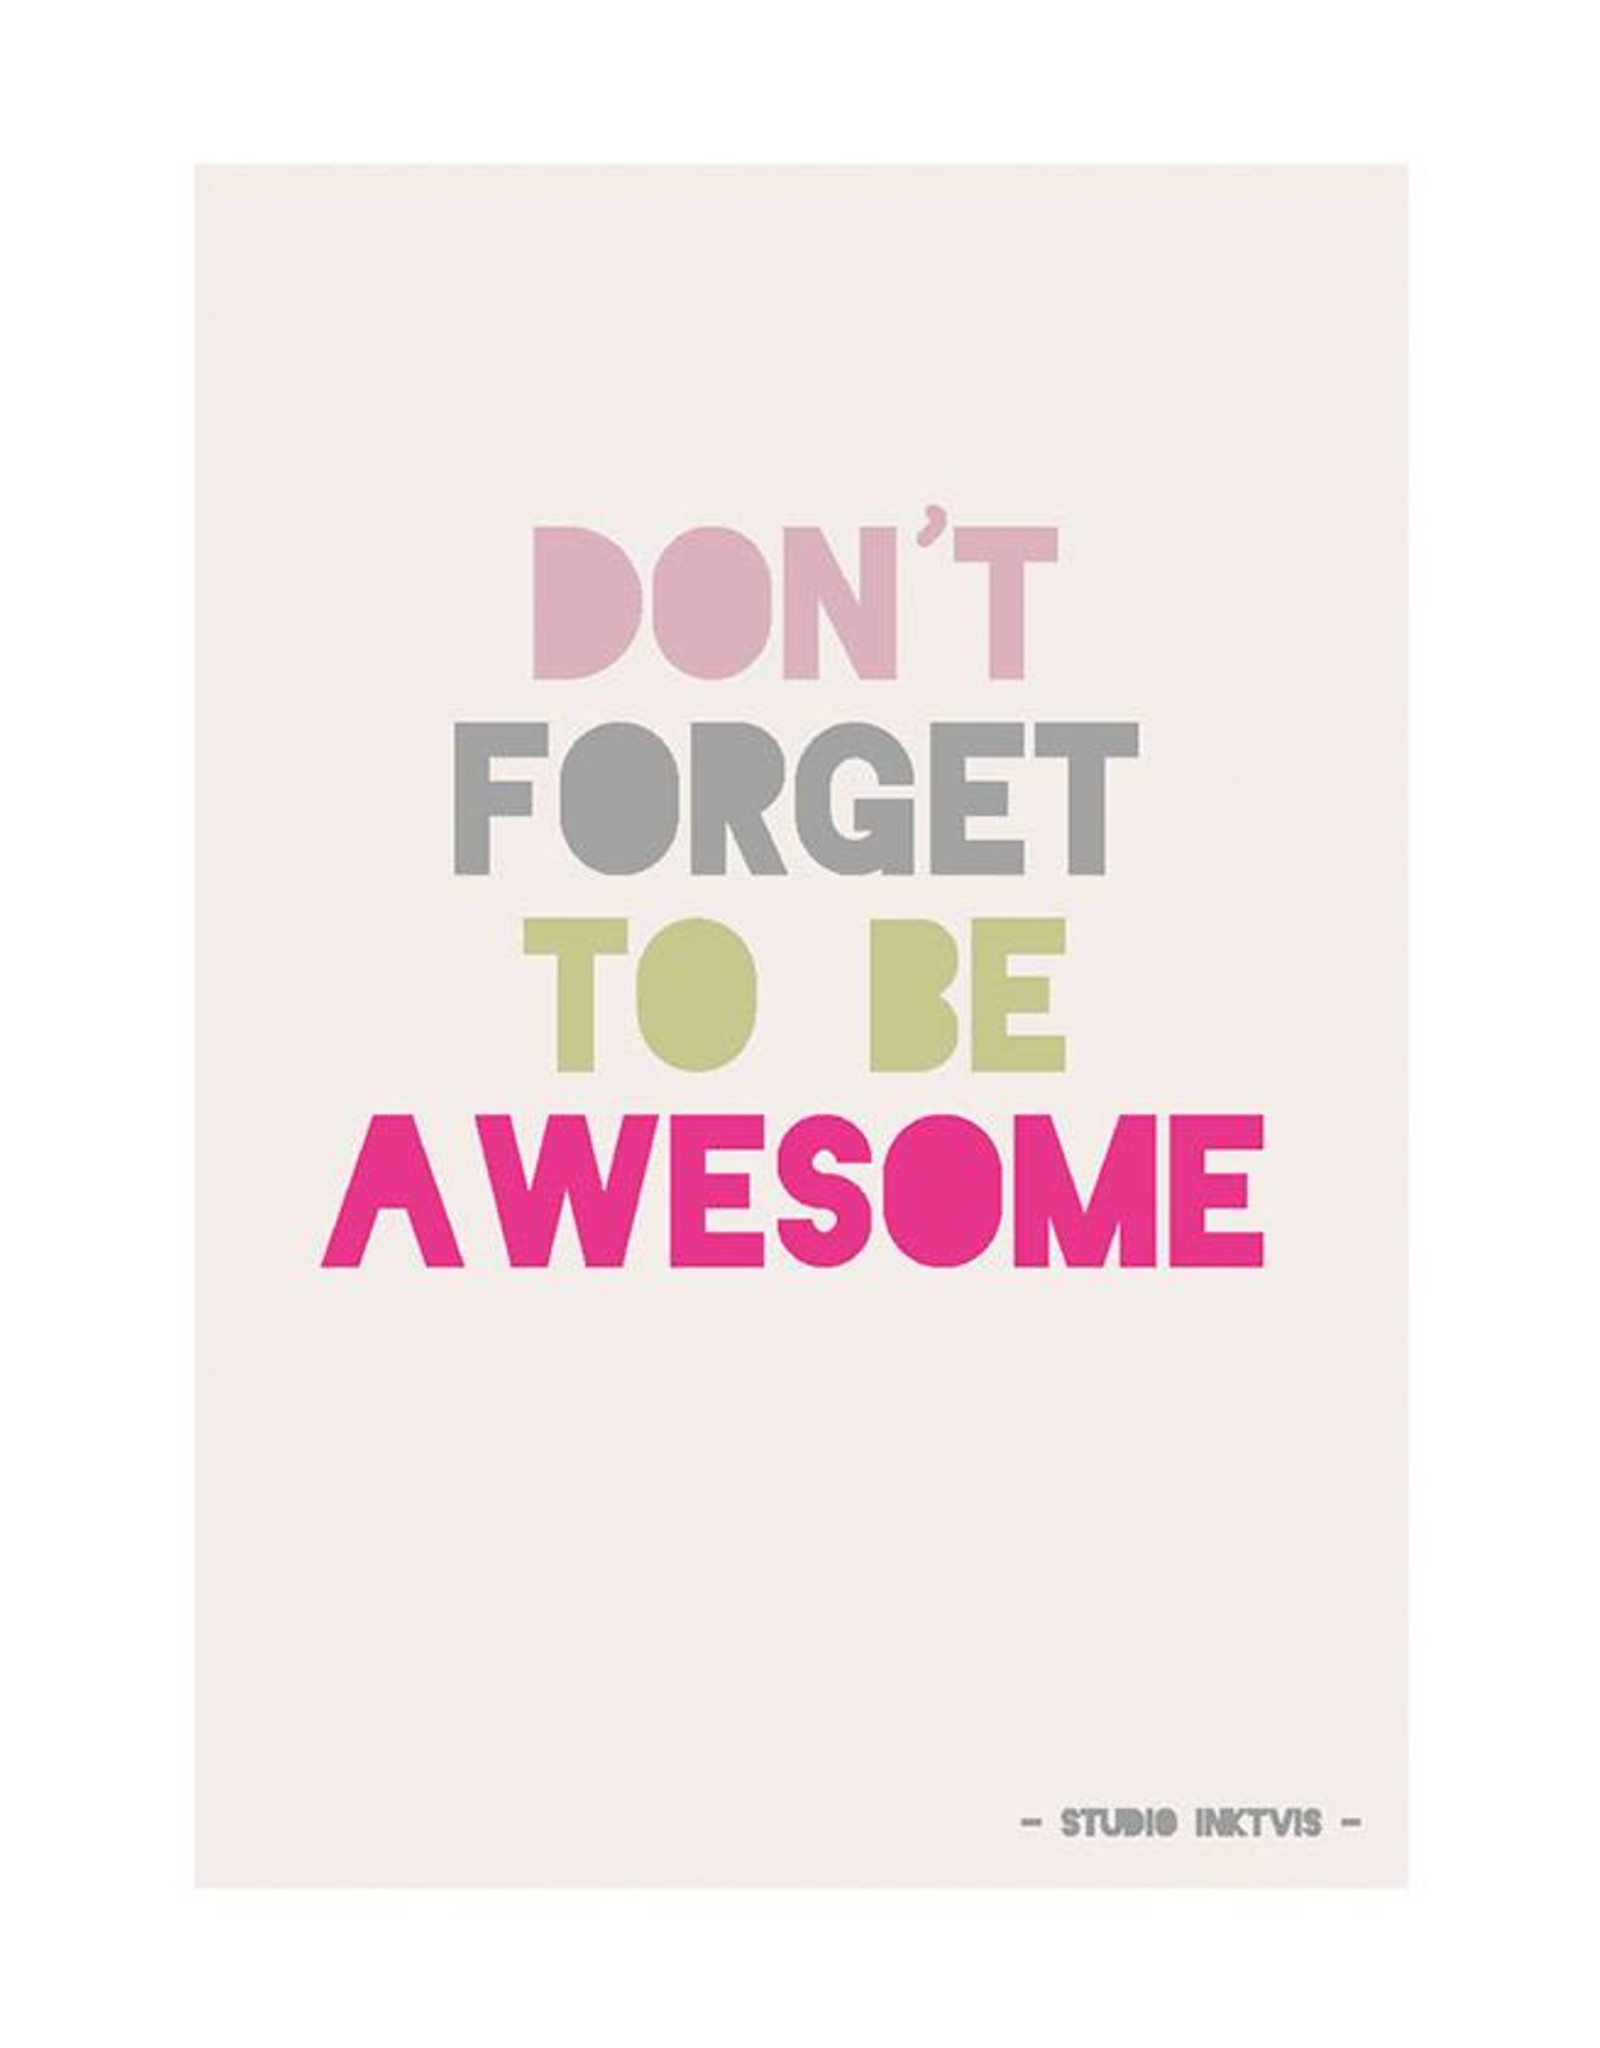 Wenskaart Studio Inktvis-Don't forget to be awesome